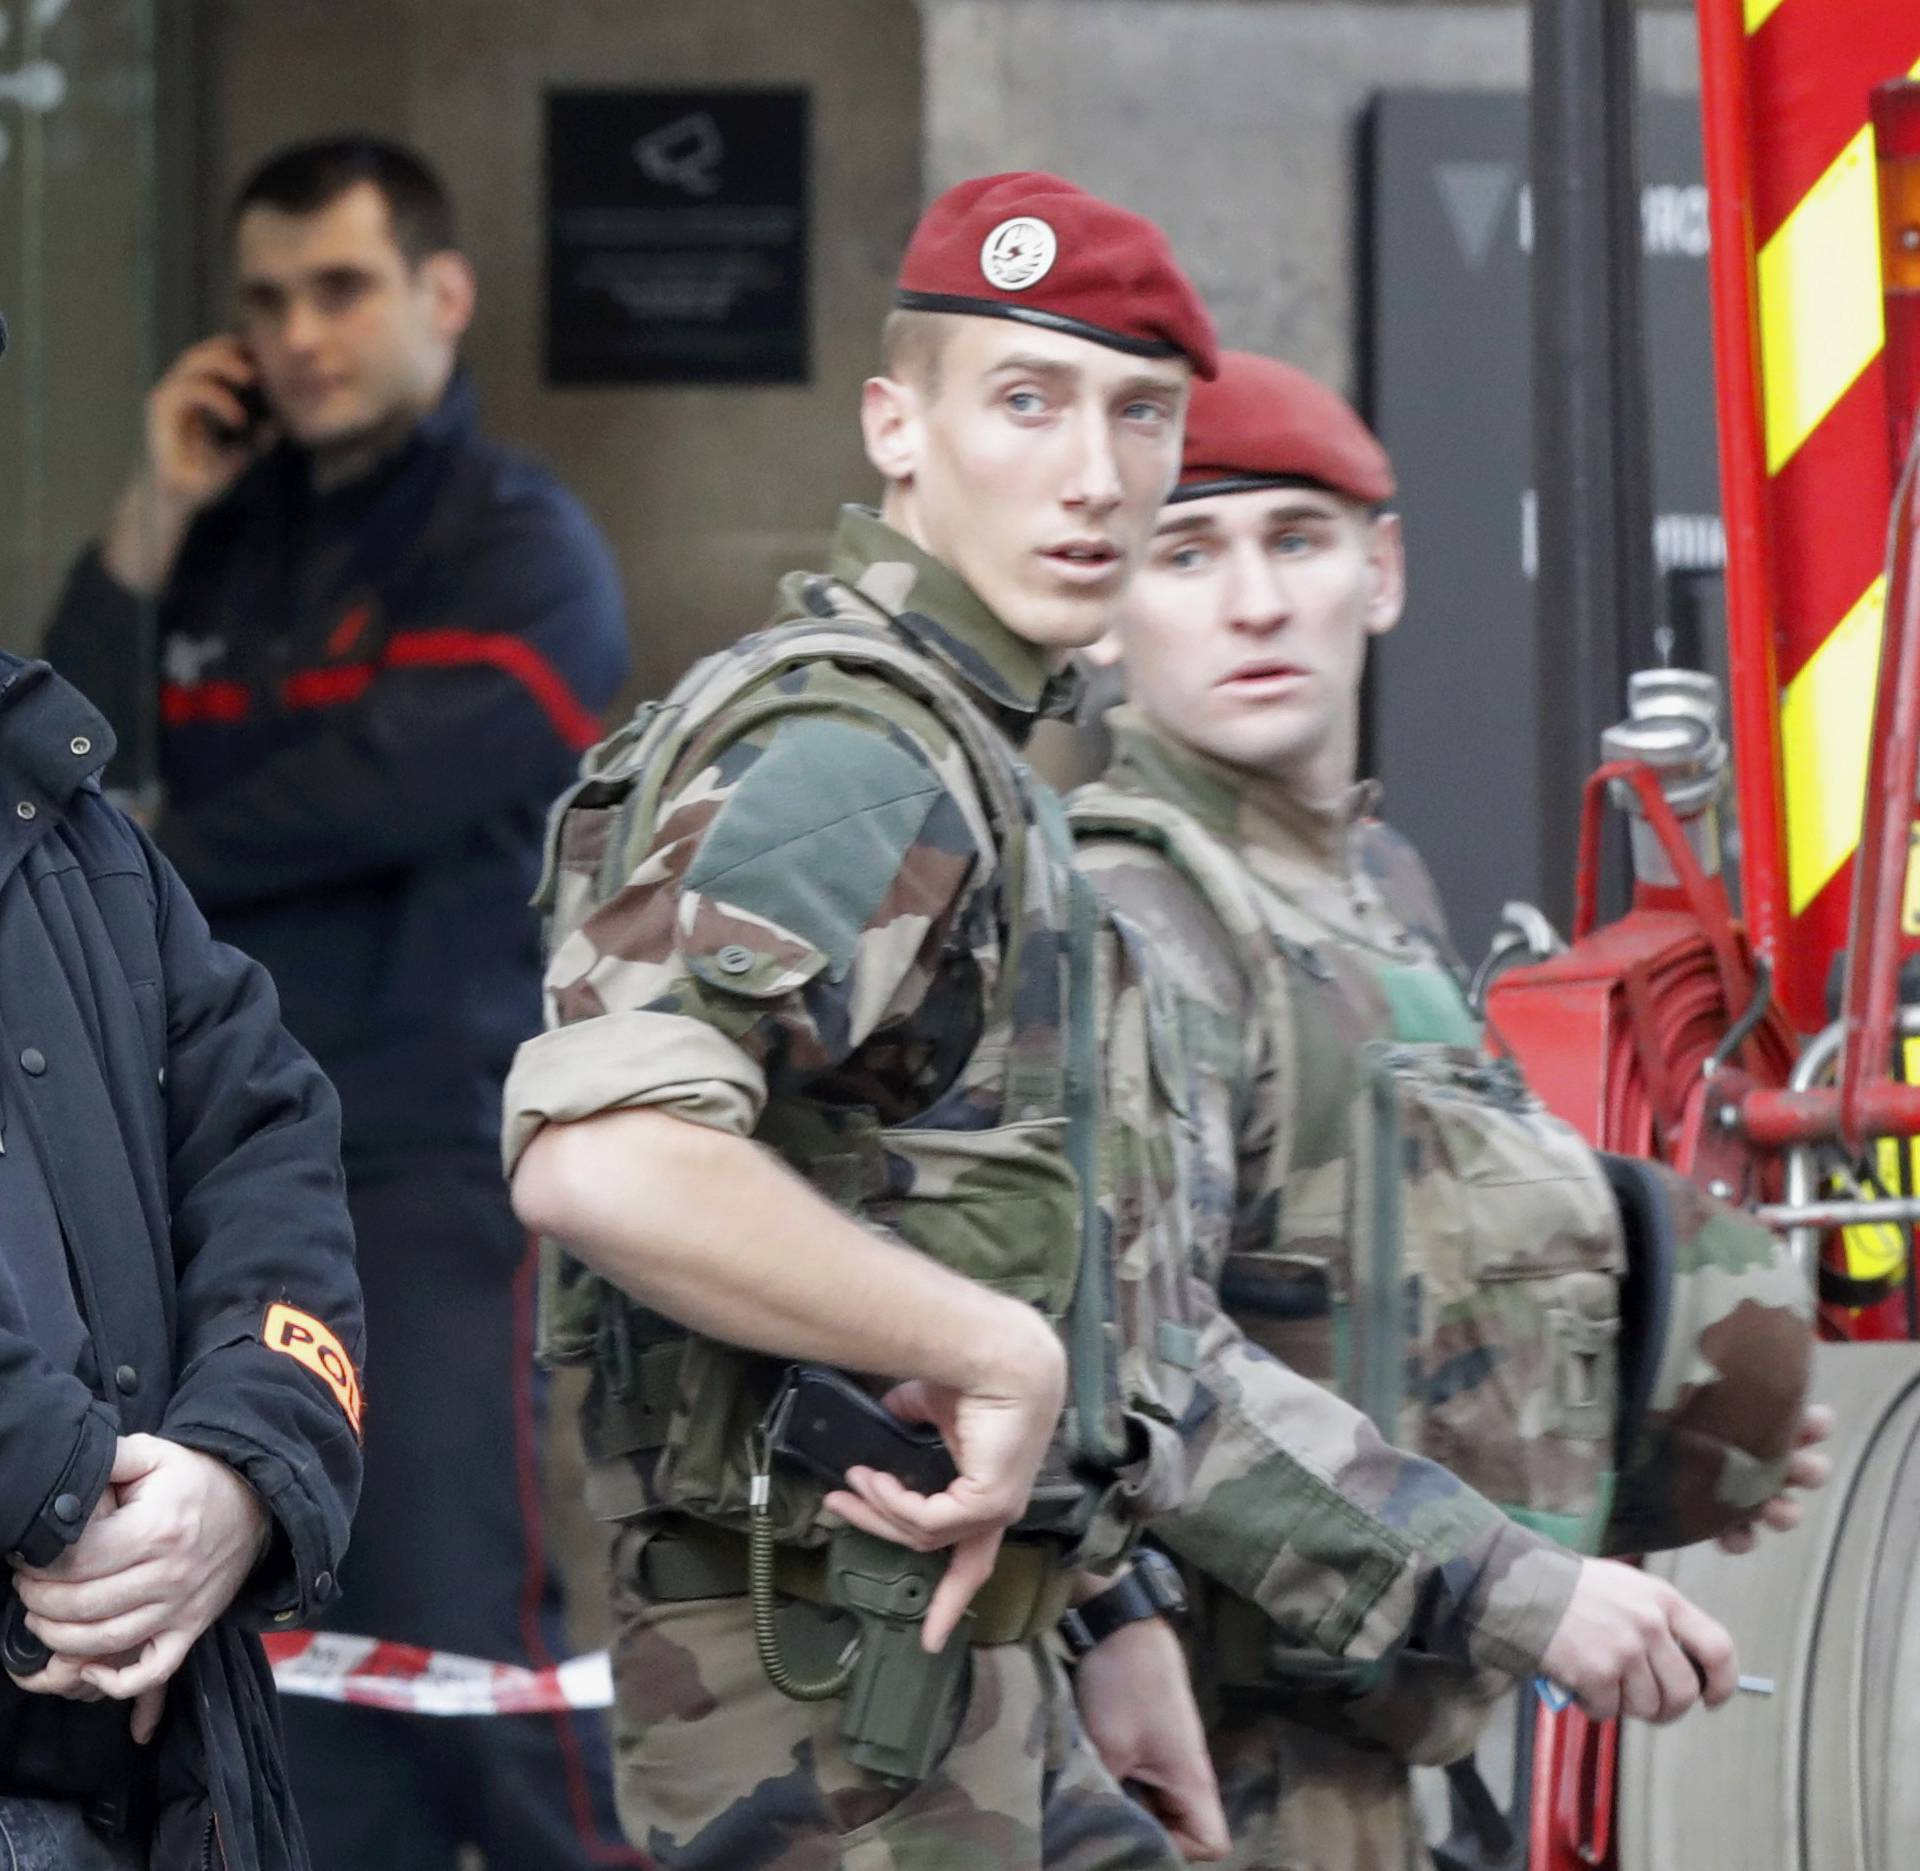 French police, soldiers and firefighters are seen in front of the street entrance of the Carrousel du Louvre in Paris